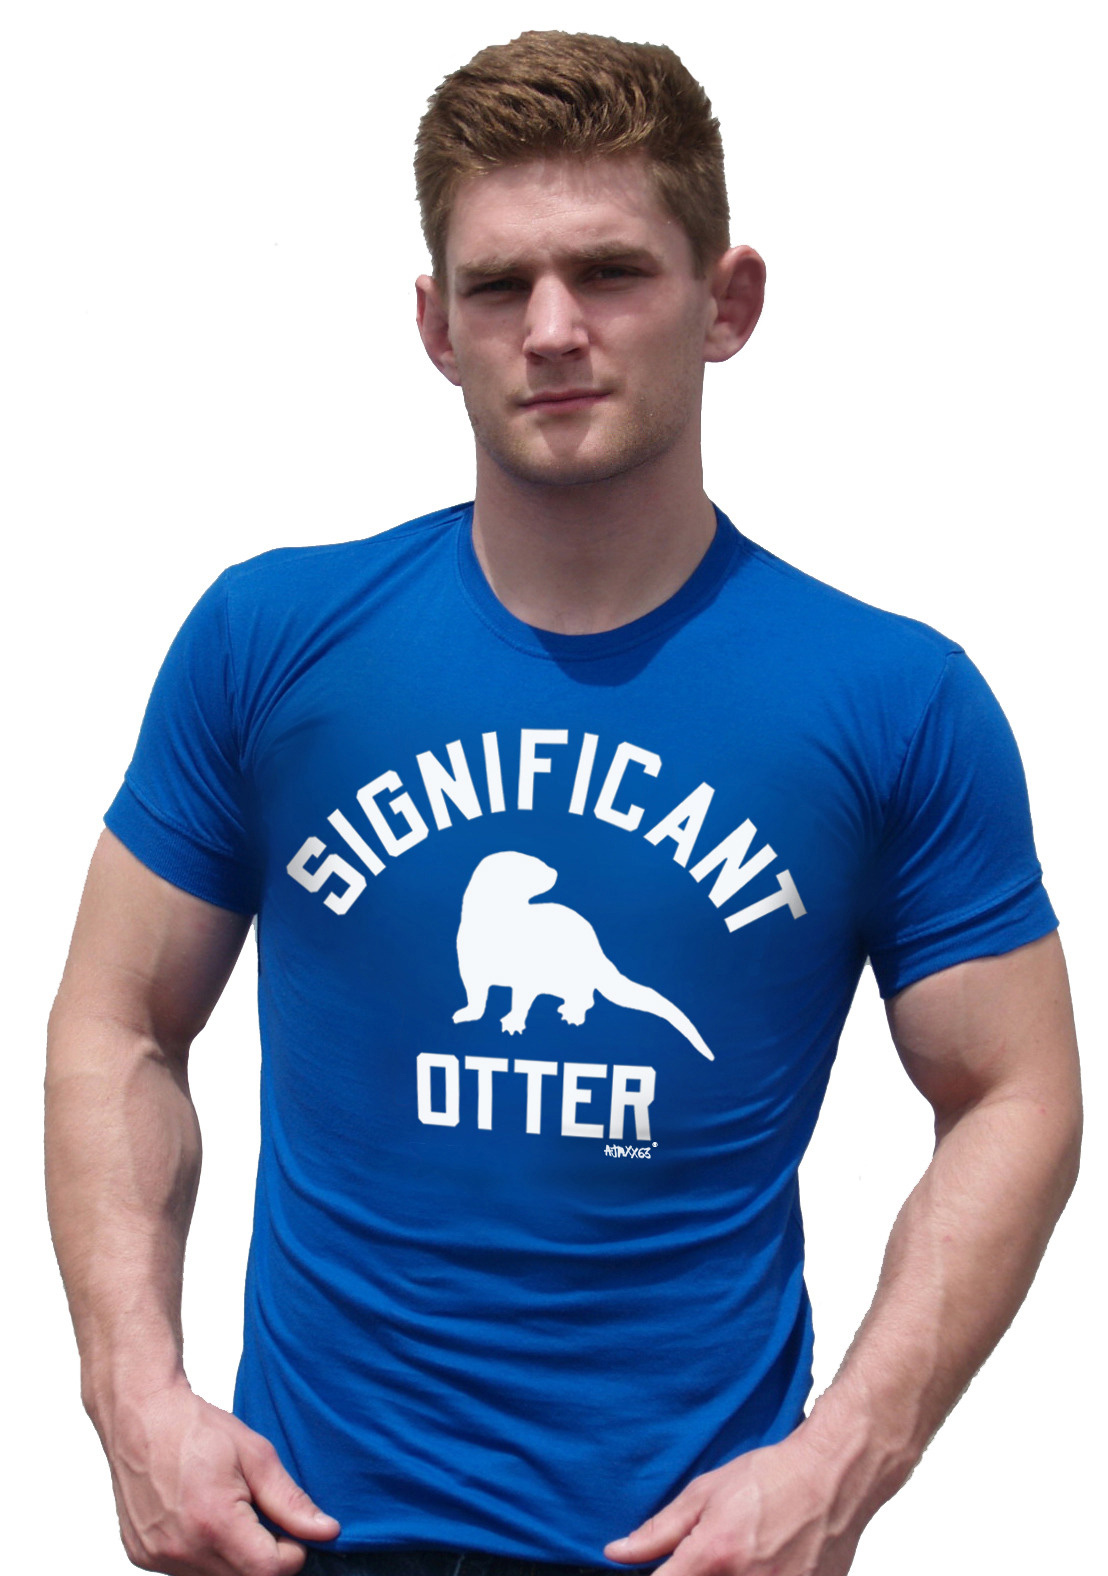 Significant Otter Athletic Shirt AJAXX63